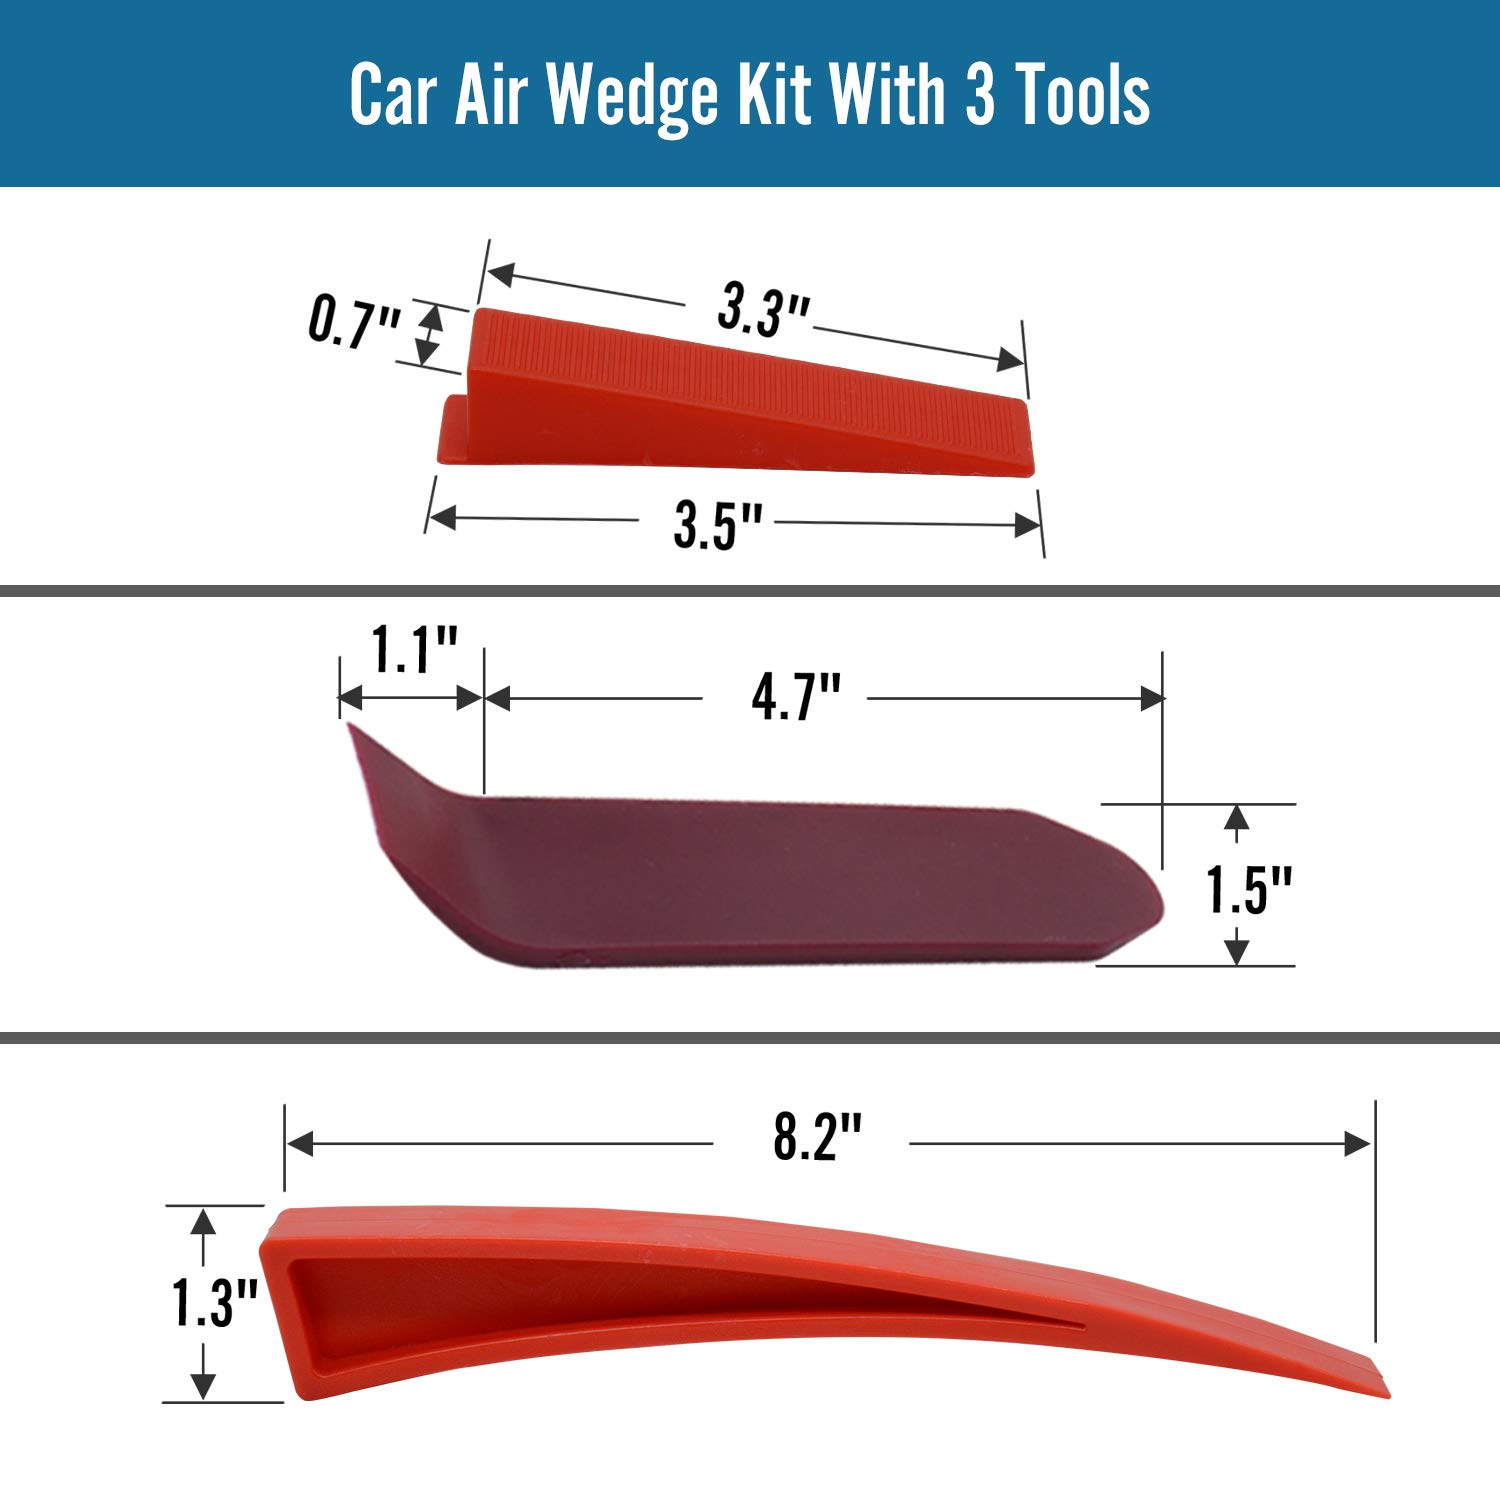 Seven Sparta Car Air Wedge Kit, 2PCS Air Wedge Pump Leveling Kit & Alignment Tool Inflatable Shim Bag with 3 Tools for Home Use and Auto Repair